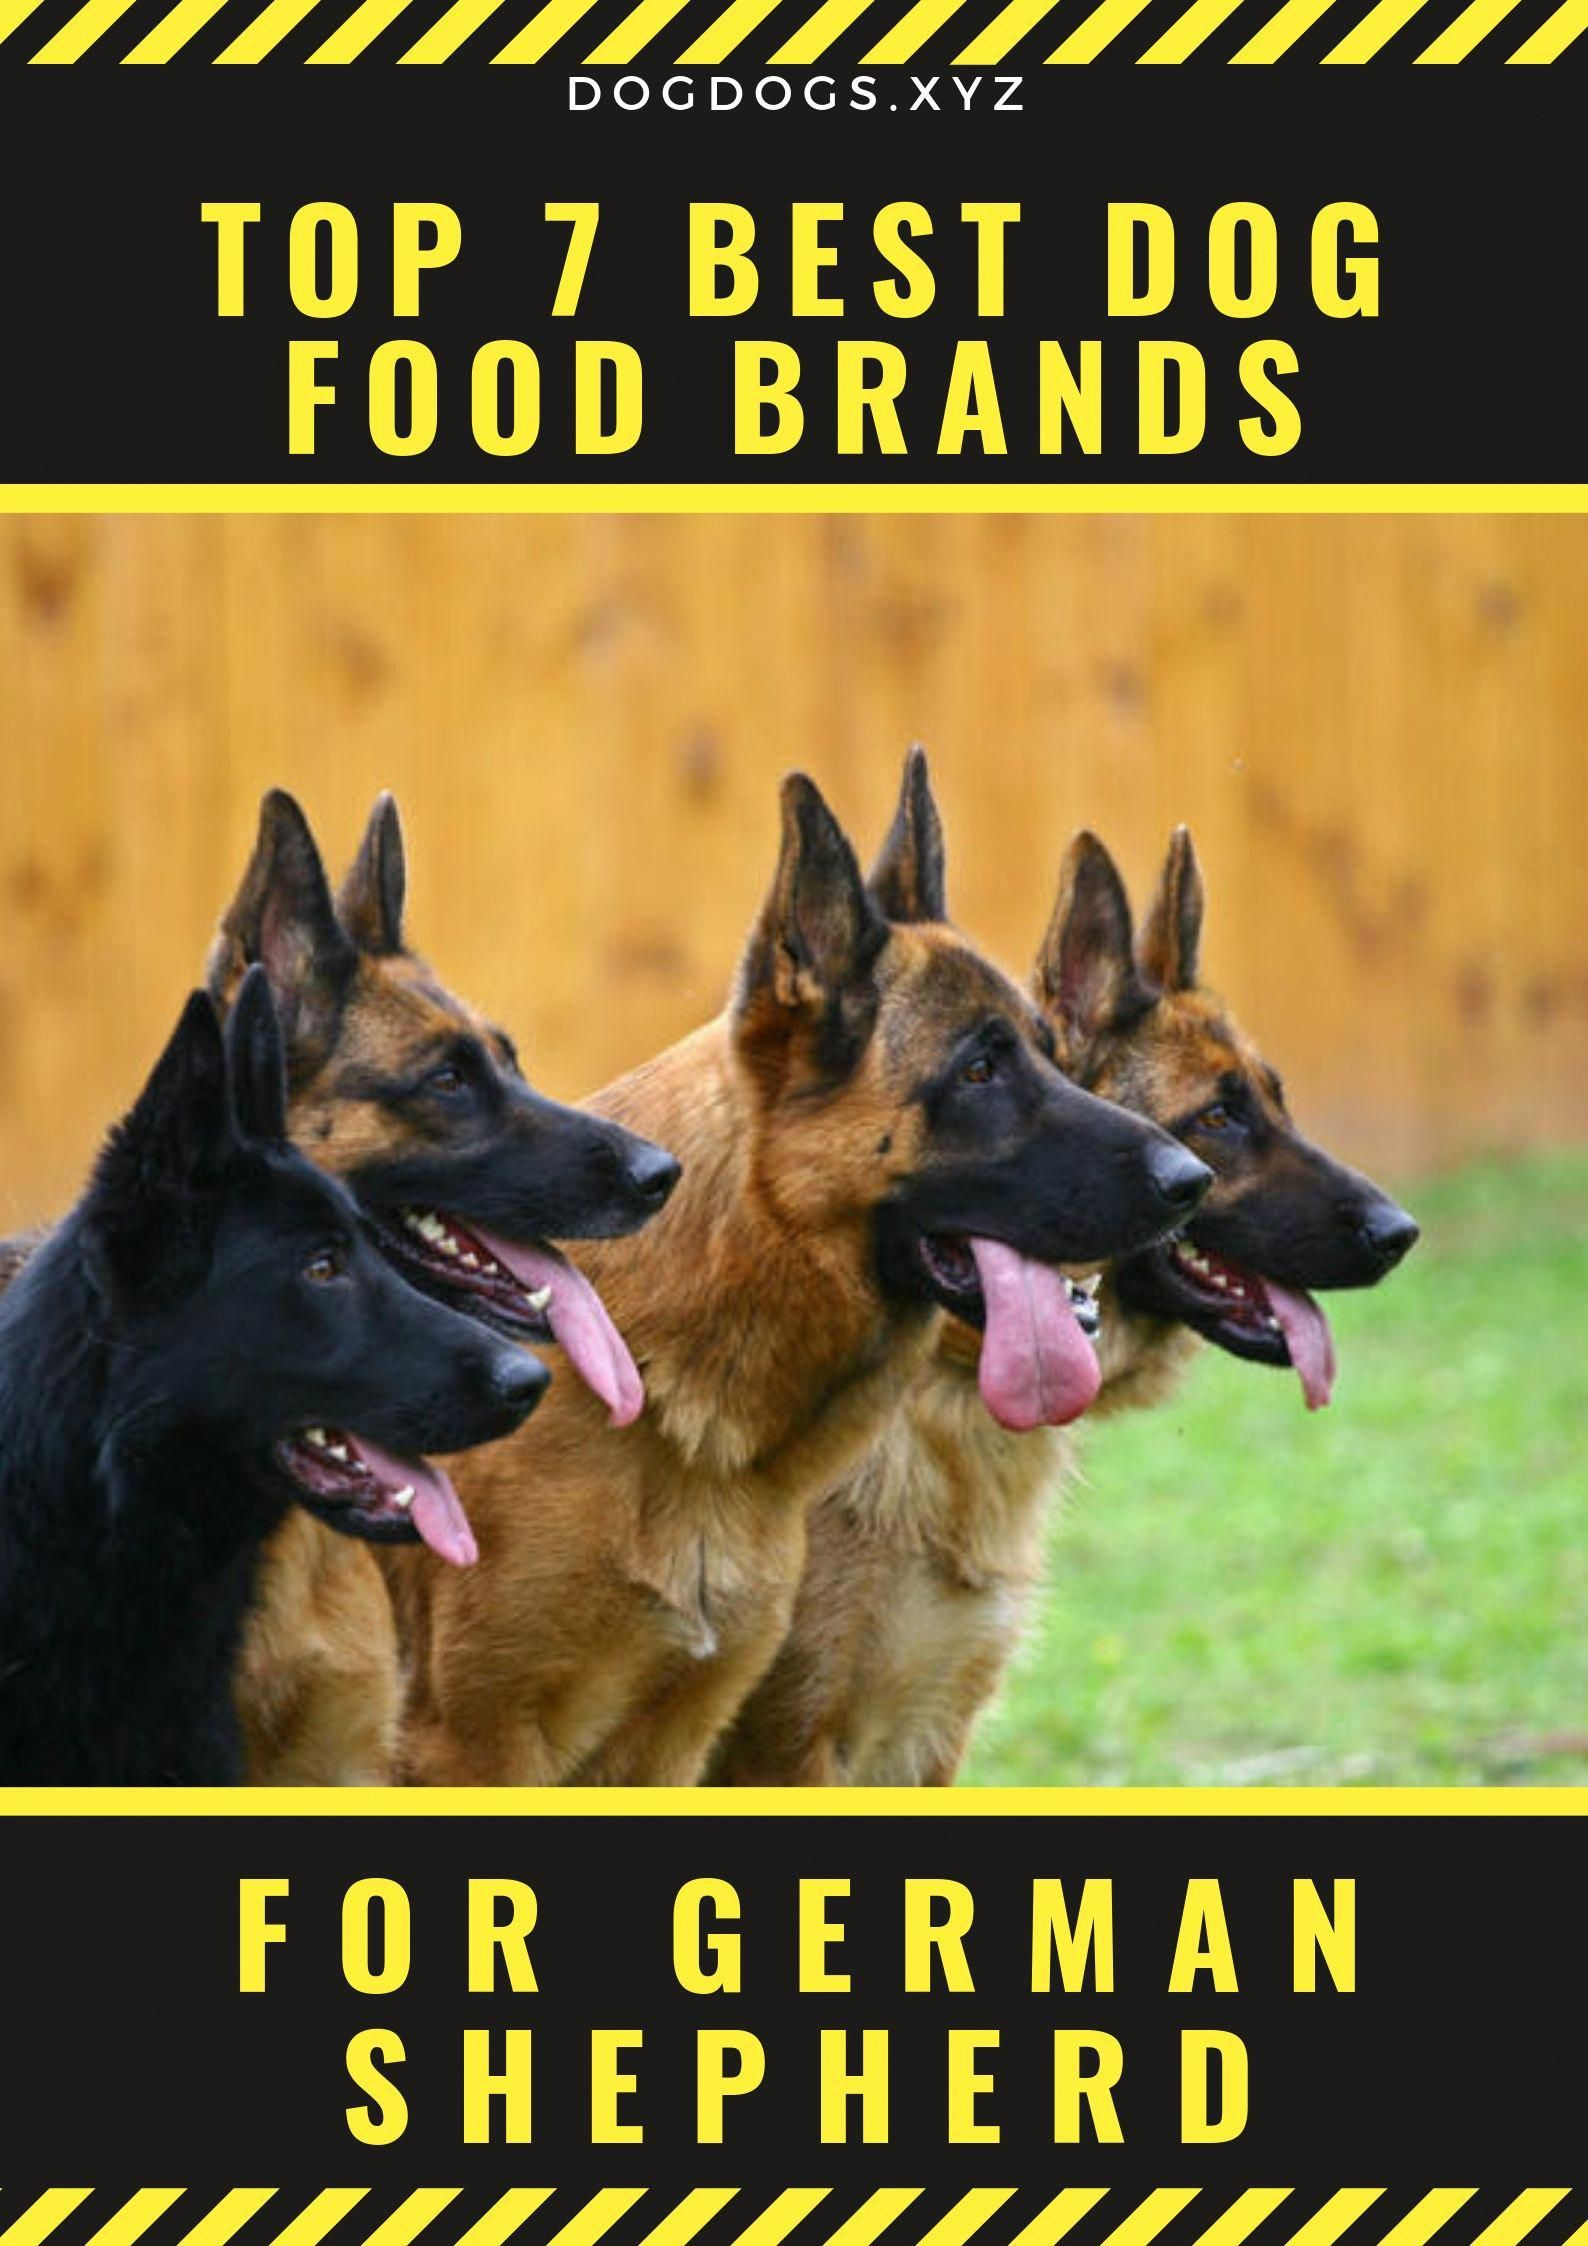 Famous delegated dog food download the infographic best